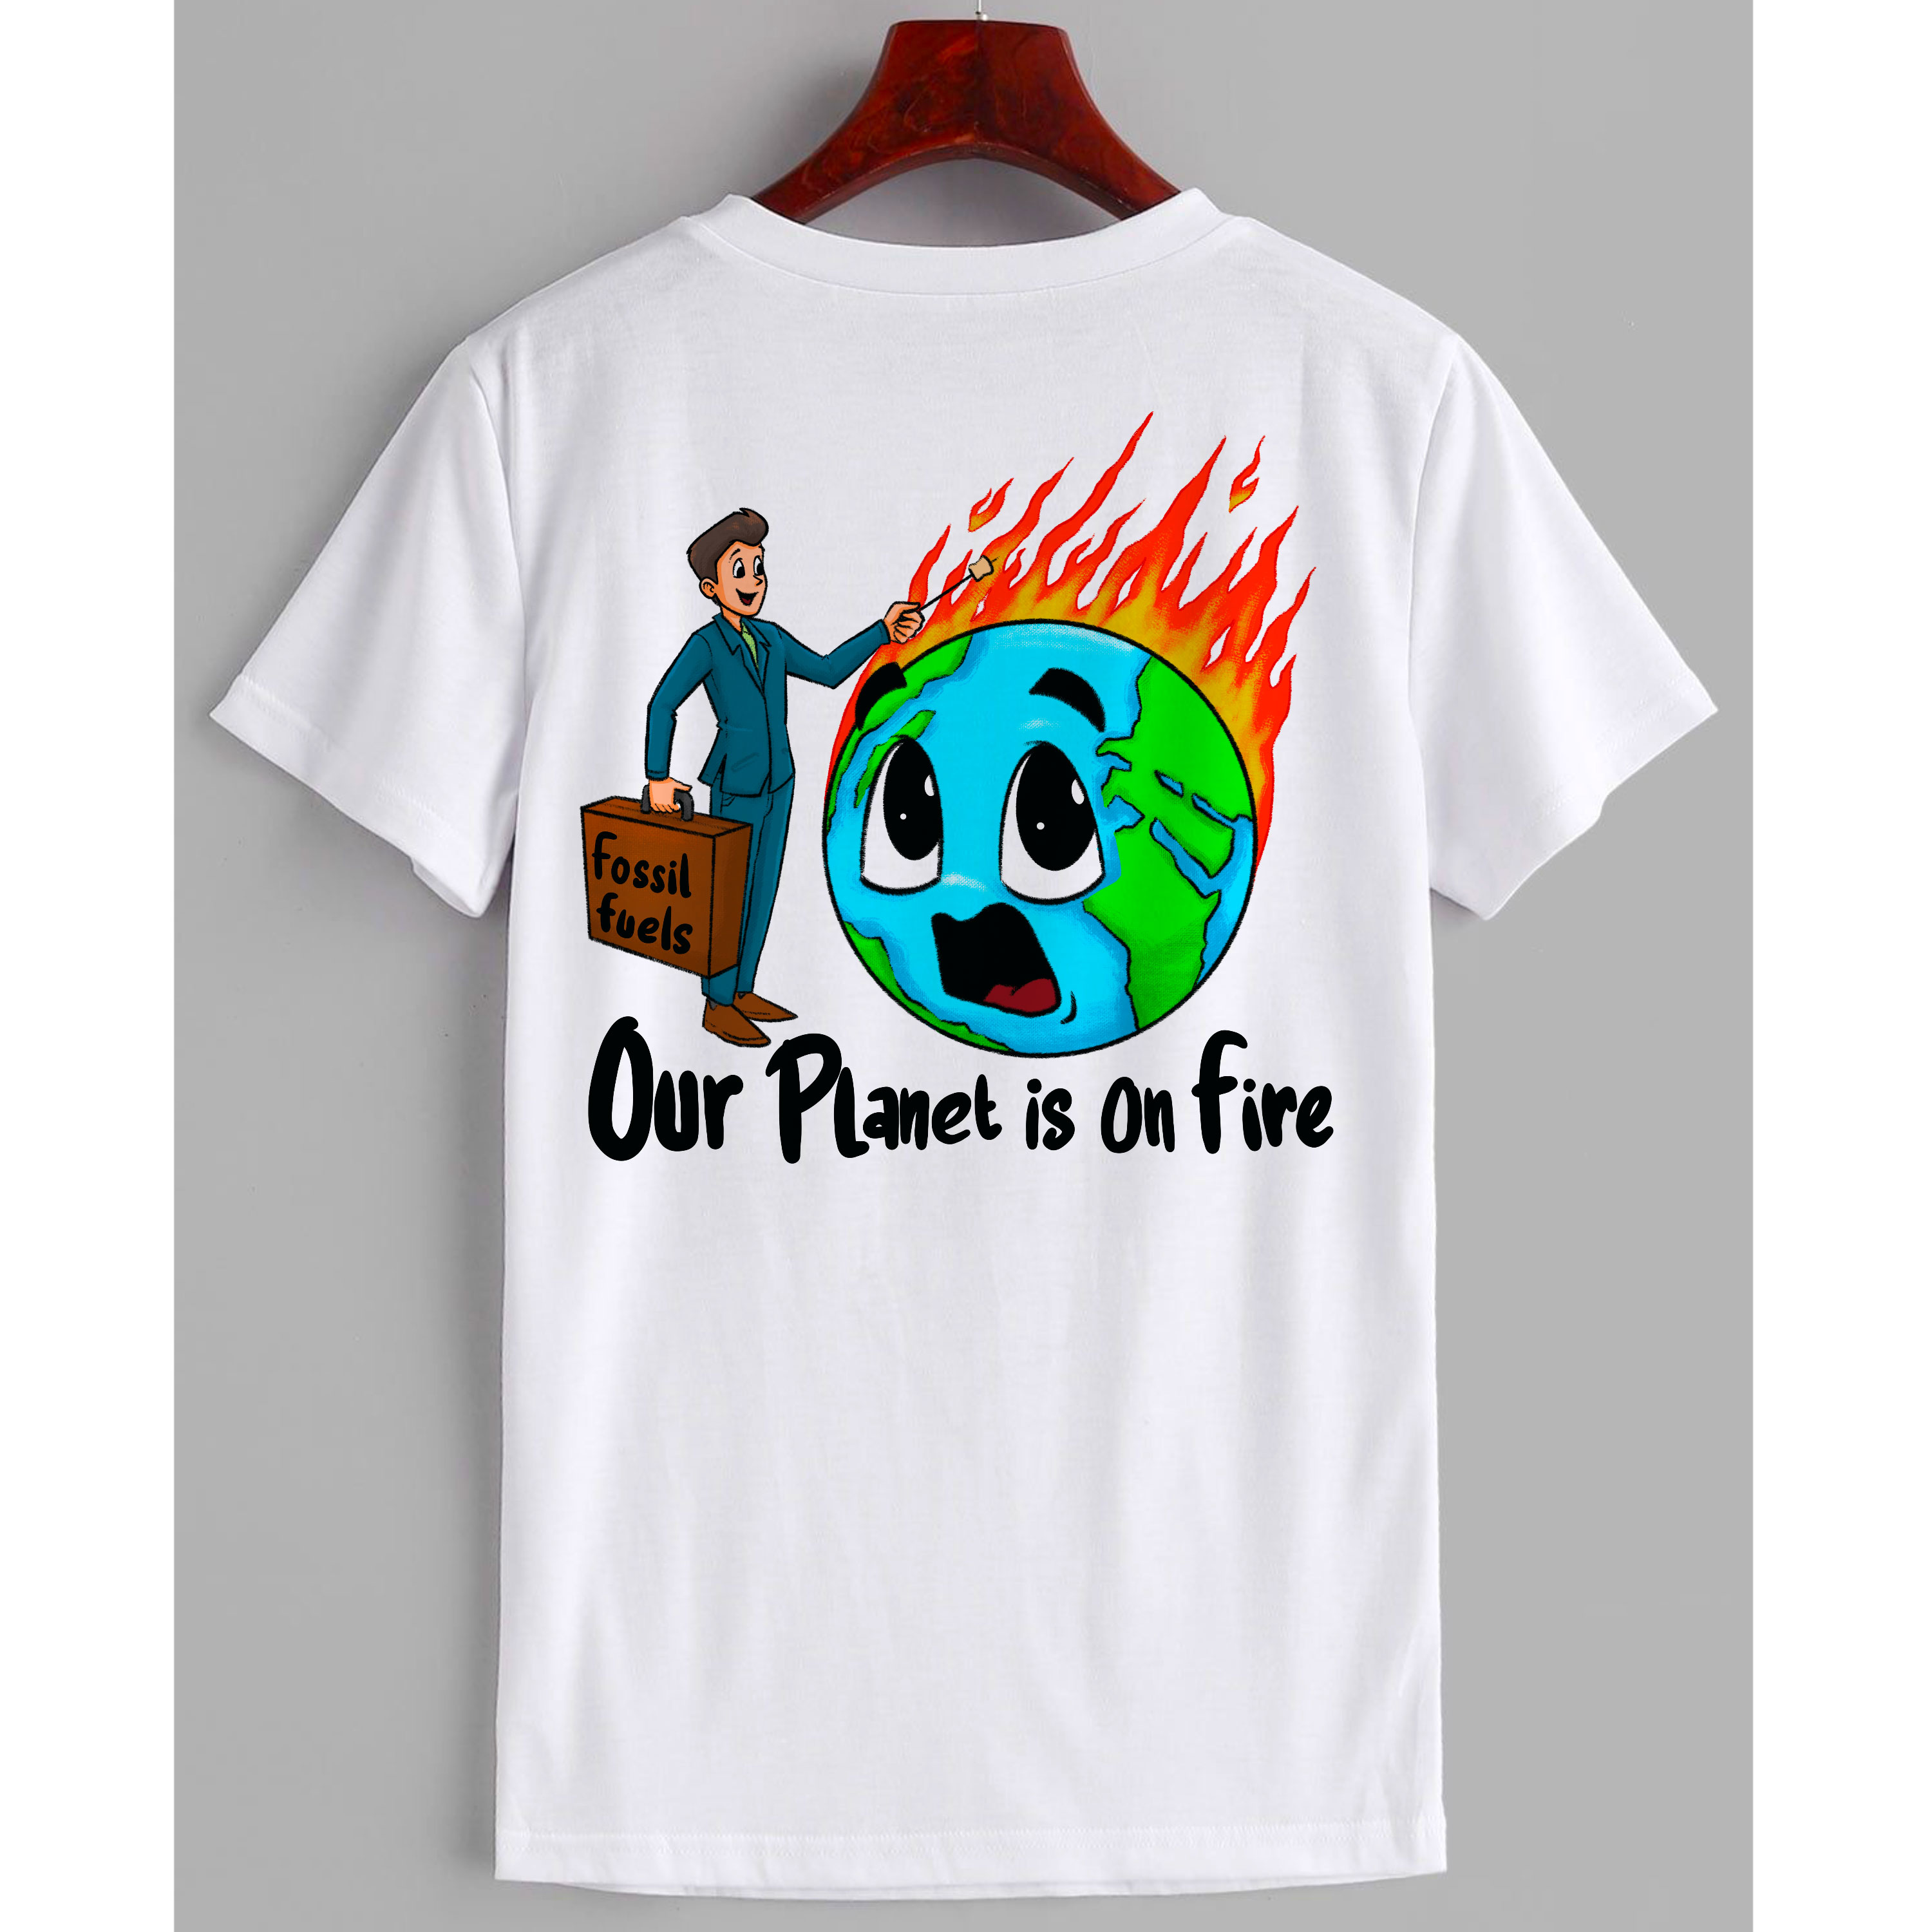 Our Planet is on Fire T-Shirt